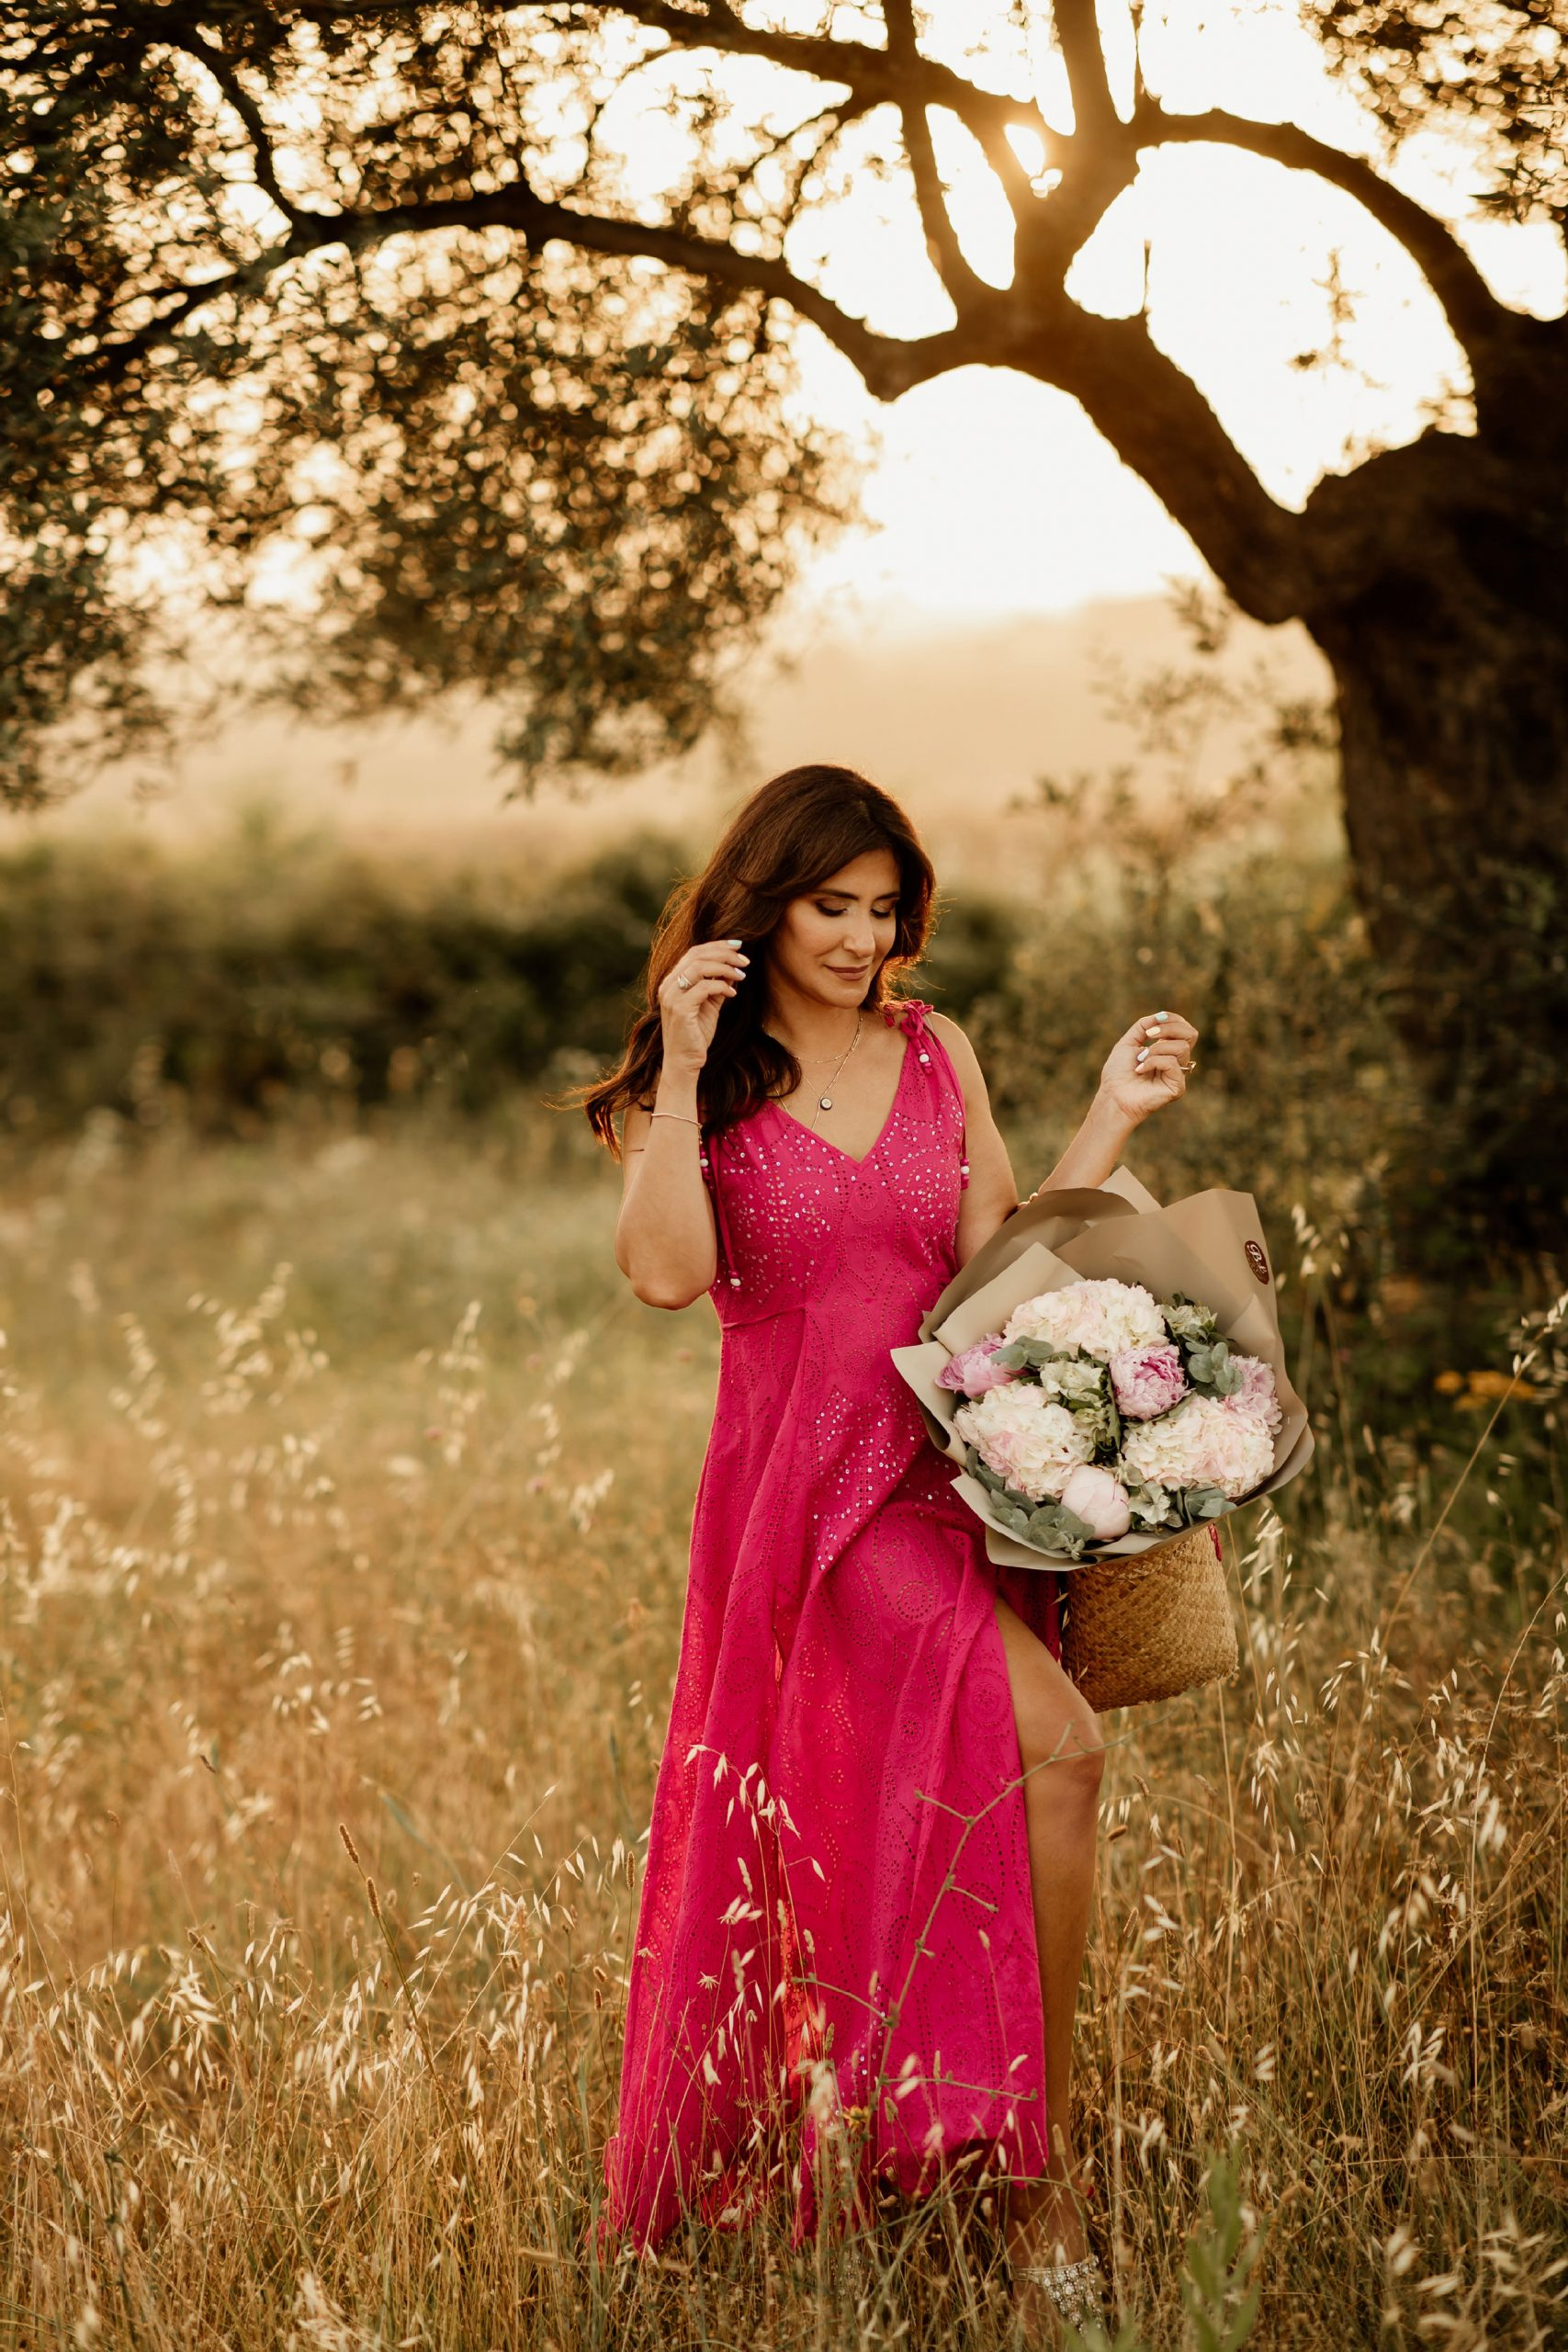 Iva Tico walking on the field holding flowers